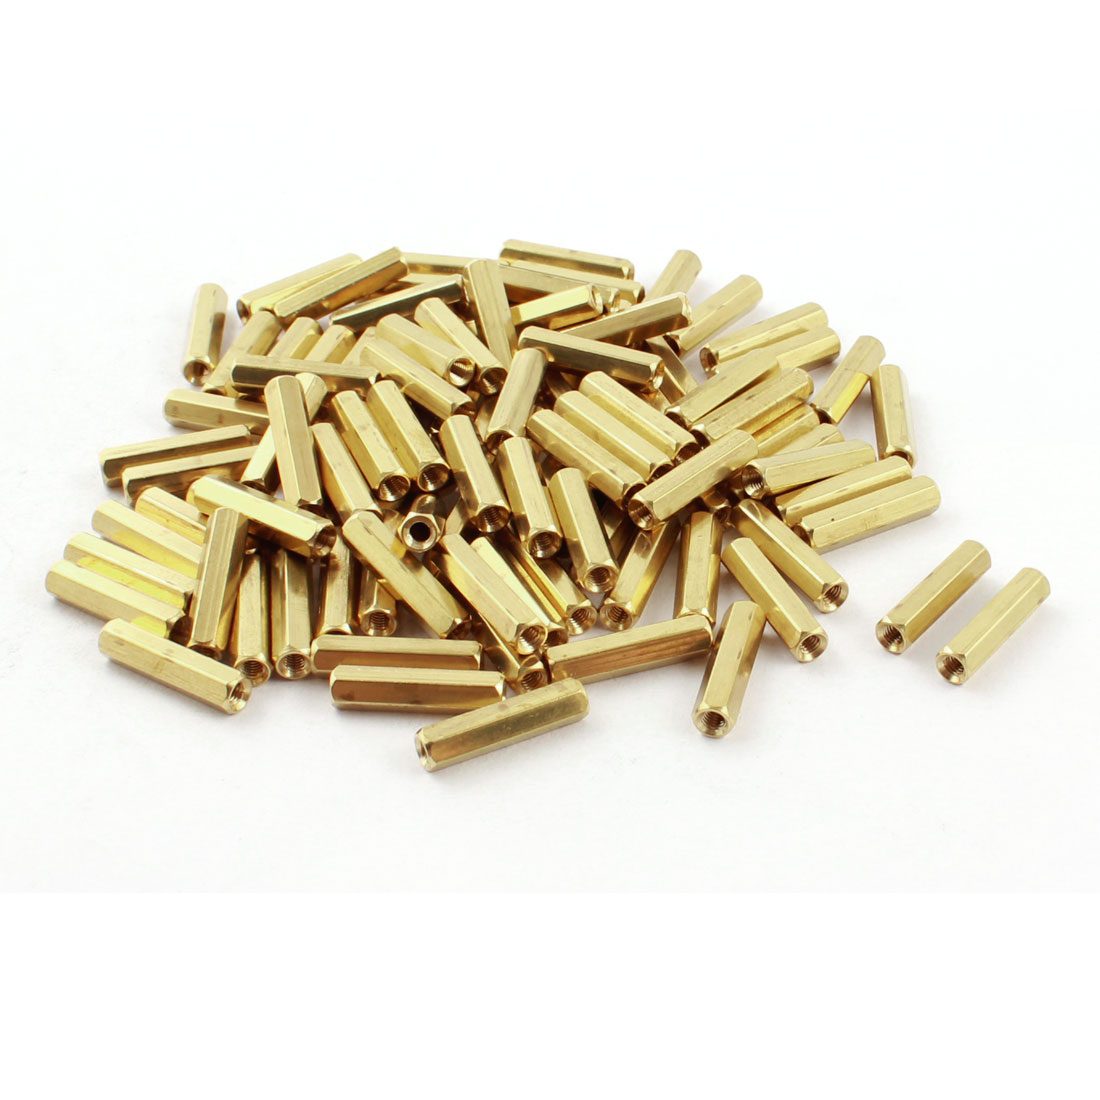 100Pcs Female Thread Gold Tone Dual Ends Brass Pillar PCB Standoff Hexiagonal Spacer M3 x 20mm